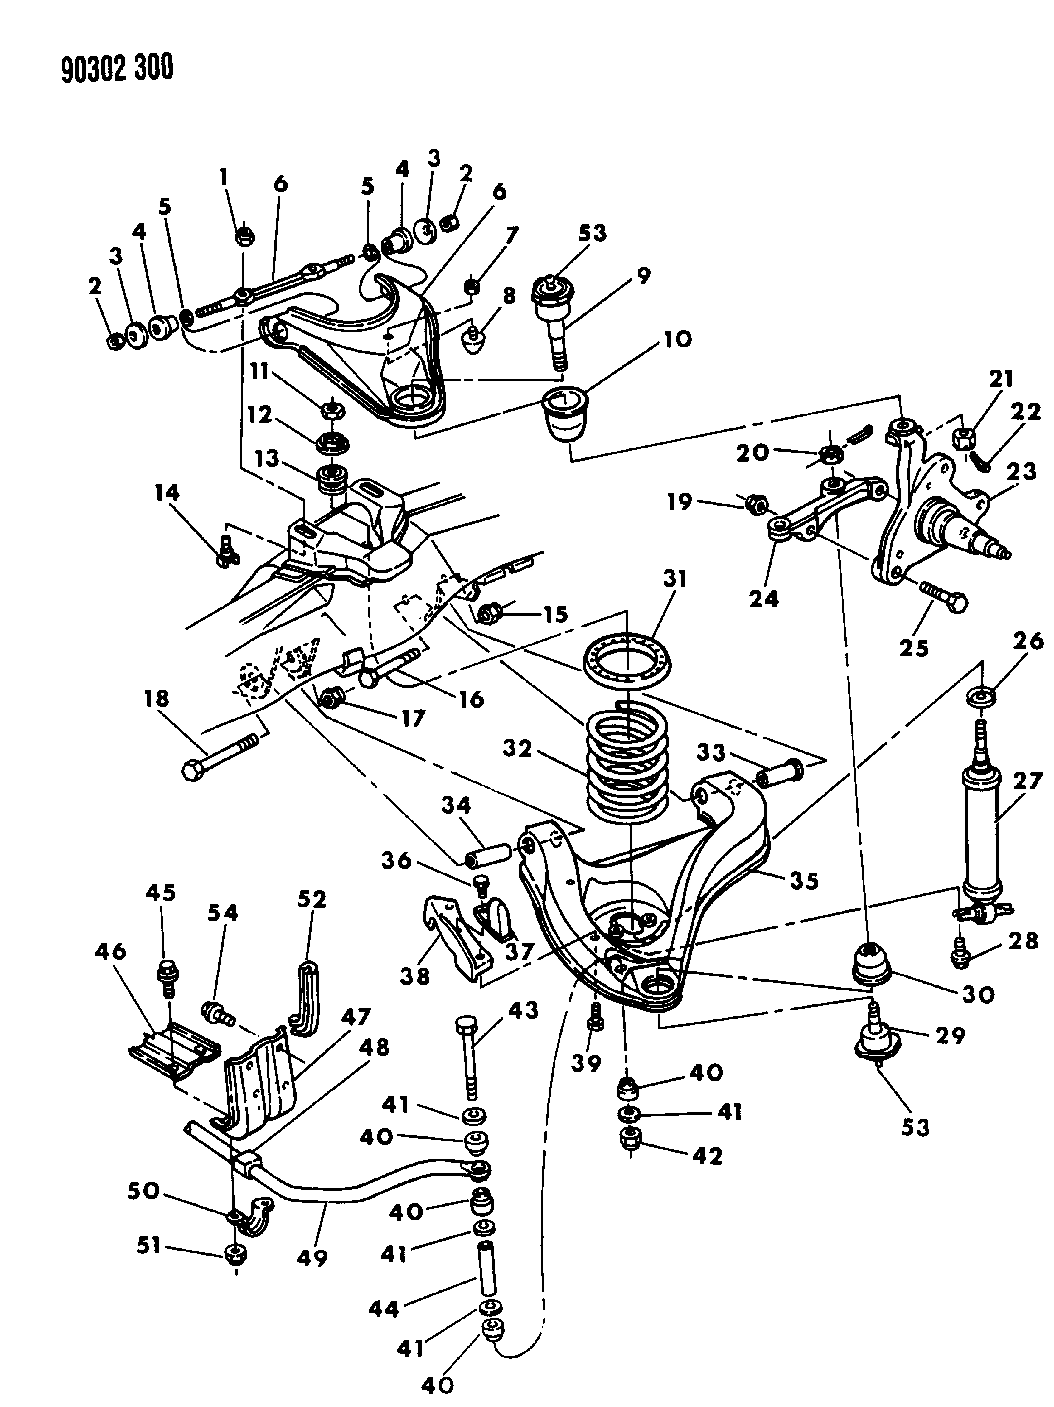 1991 Dodge Dakota Suspension - Front Coil & Shocks With Upper and Lower Control Arm & Sway Bar